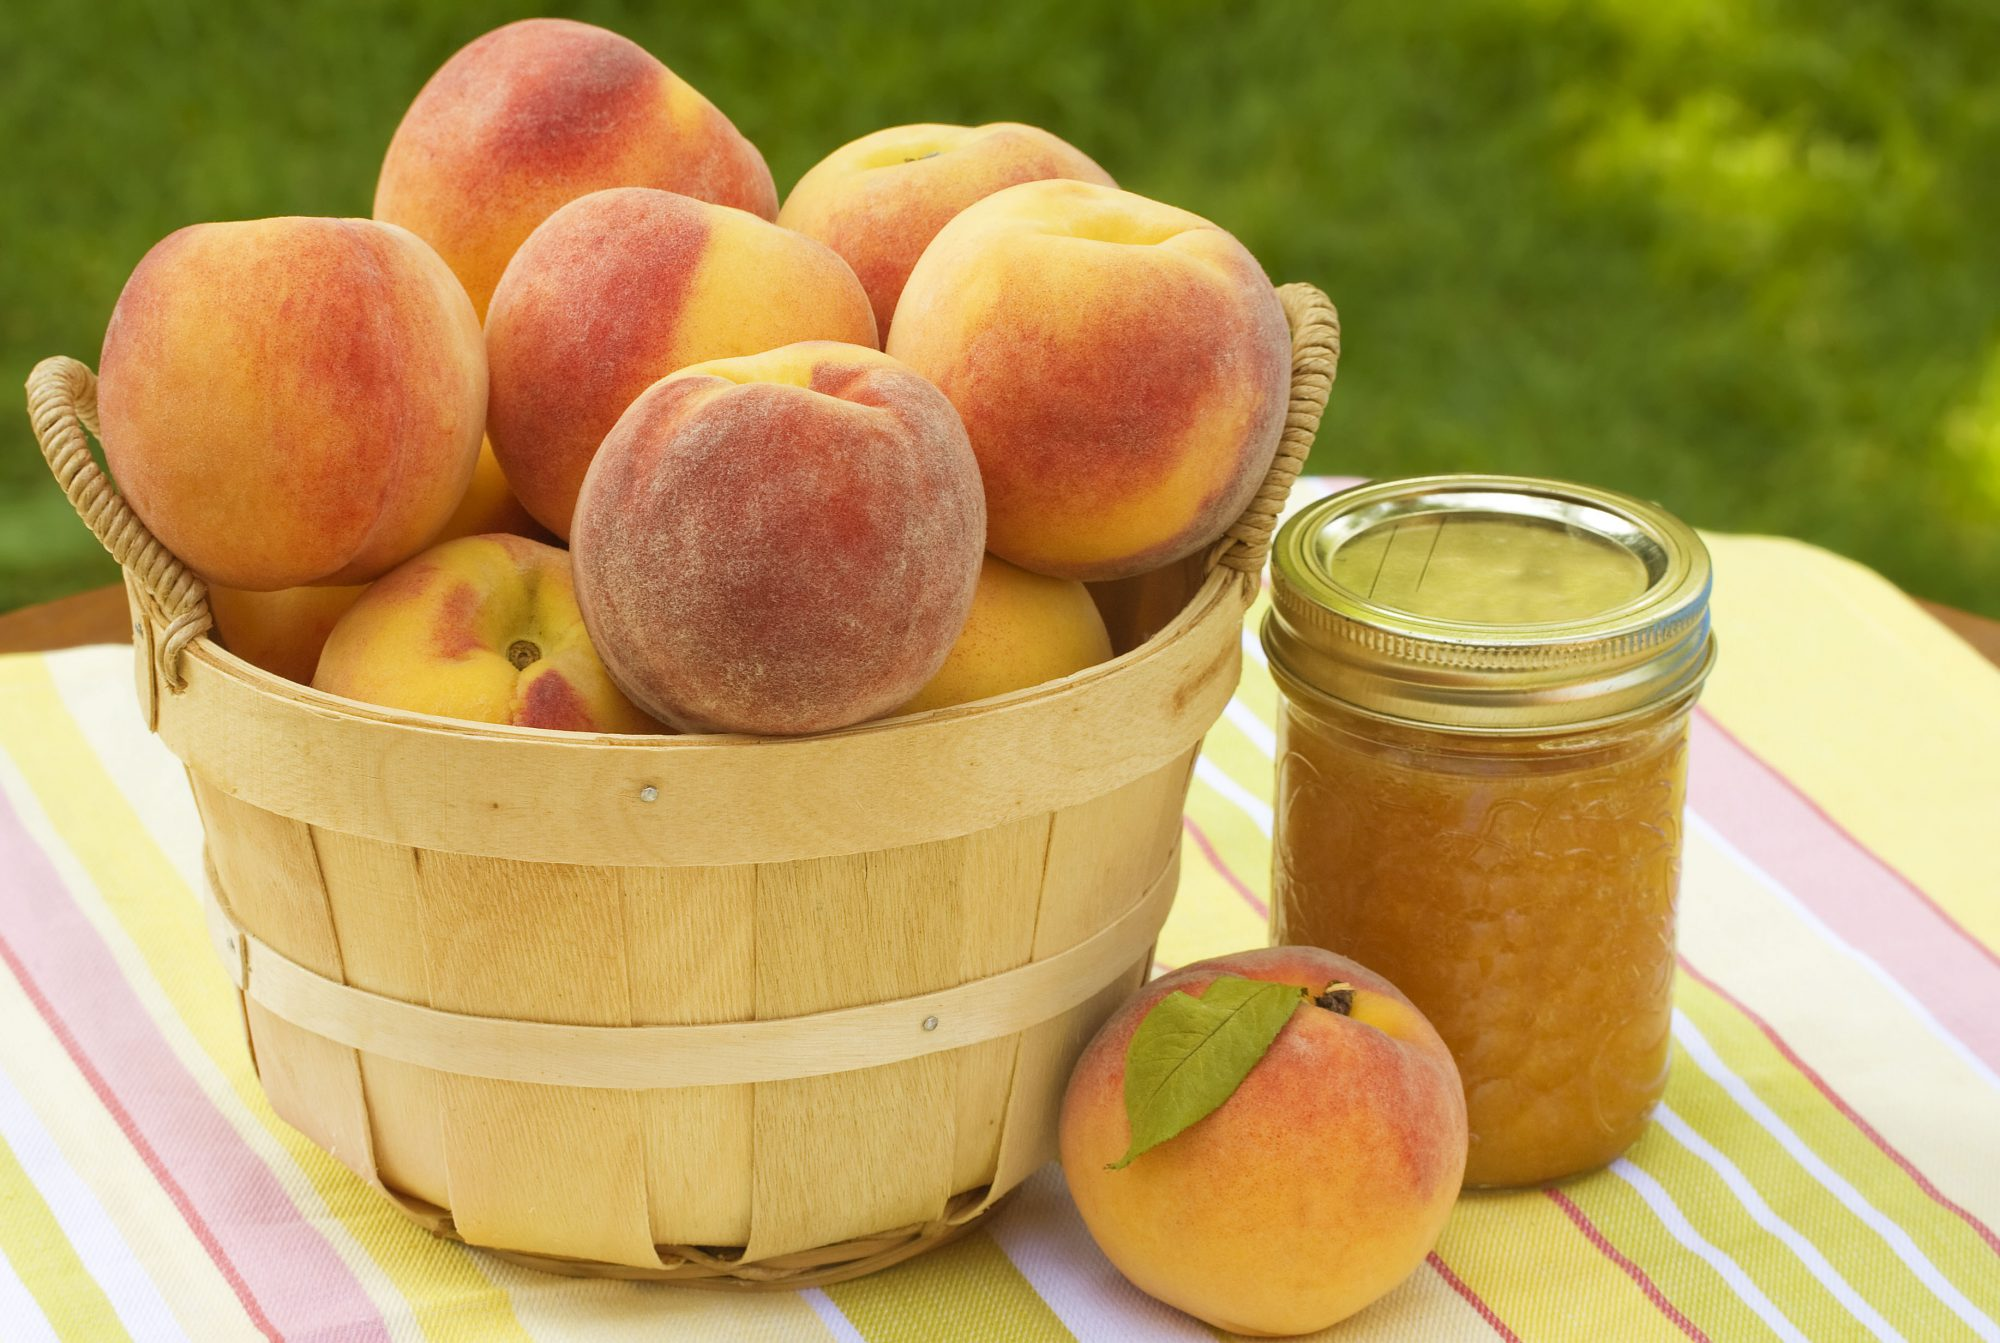 Peaches and Peach Preserve